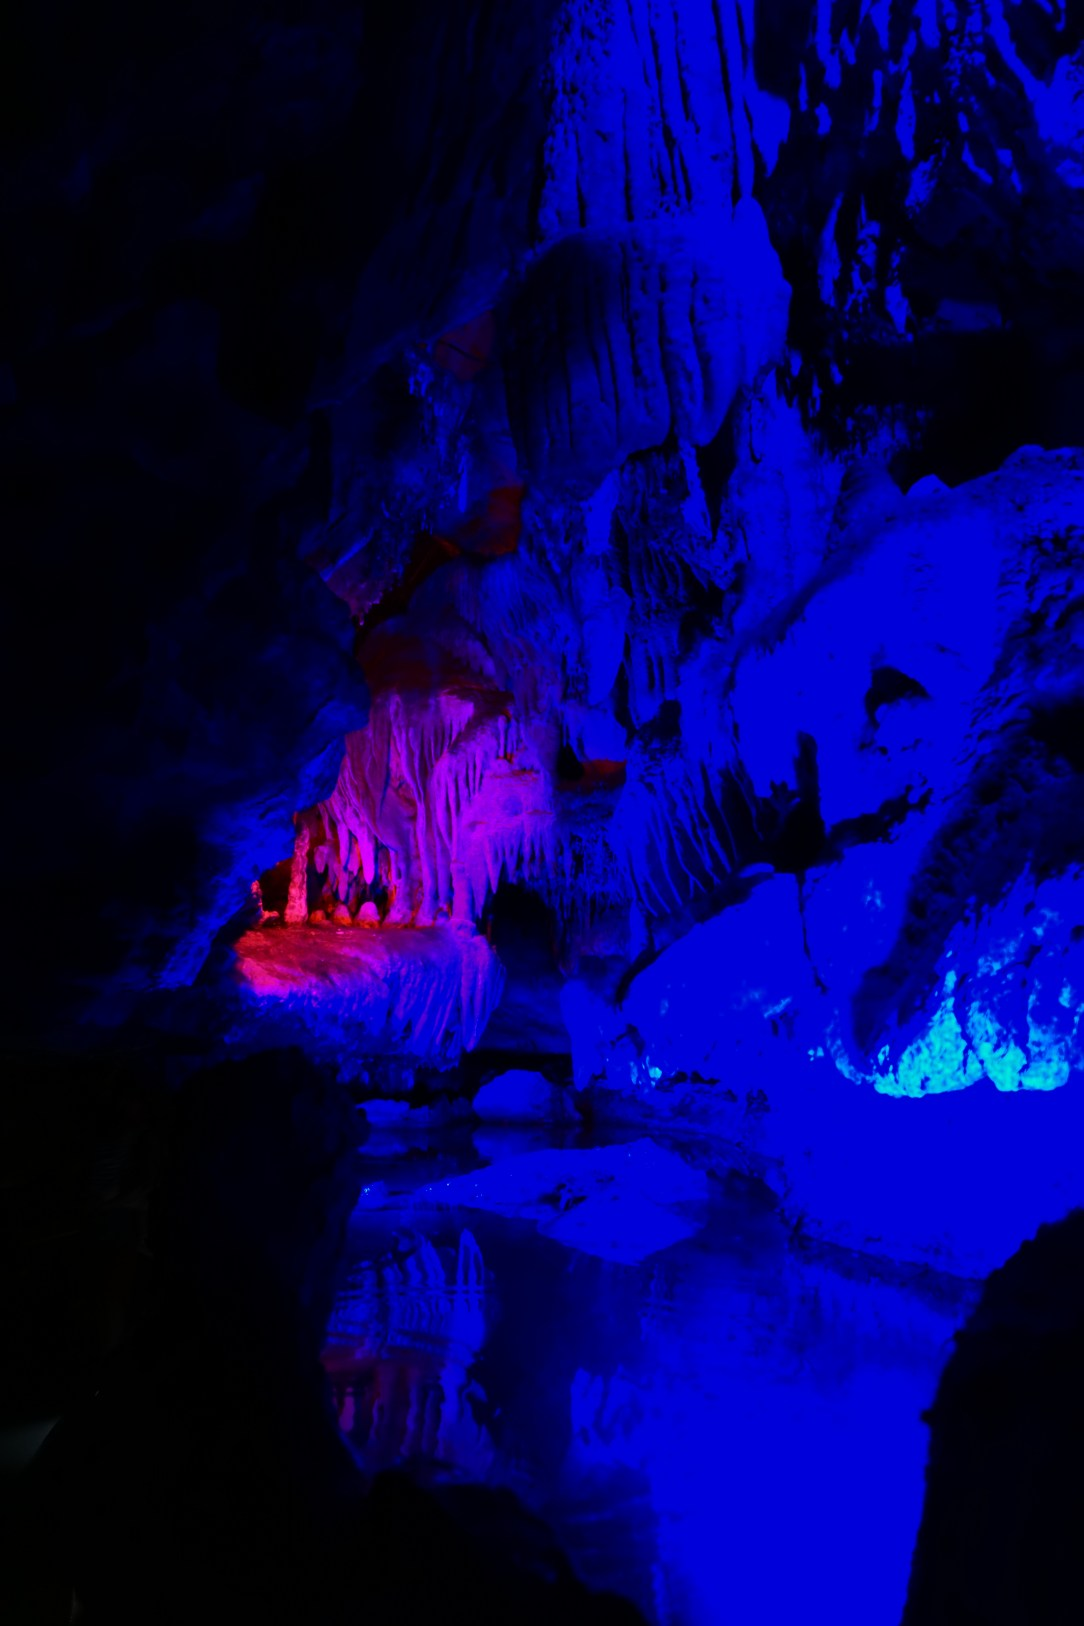 Blue and pink light effects in Ruby Falls Lookout Mountain